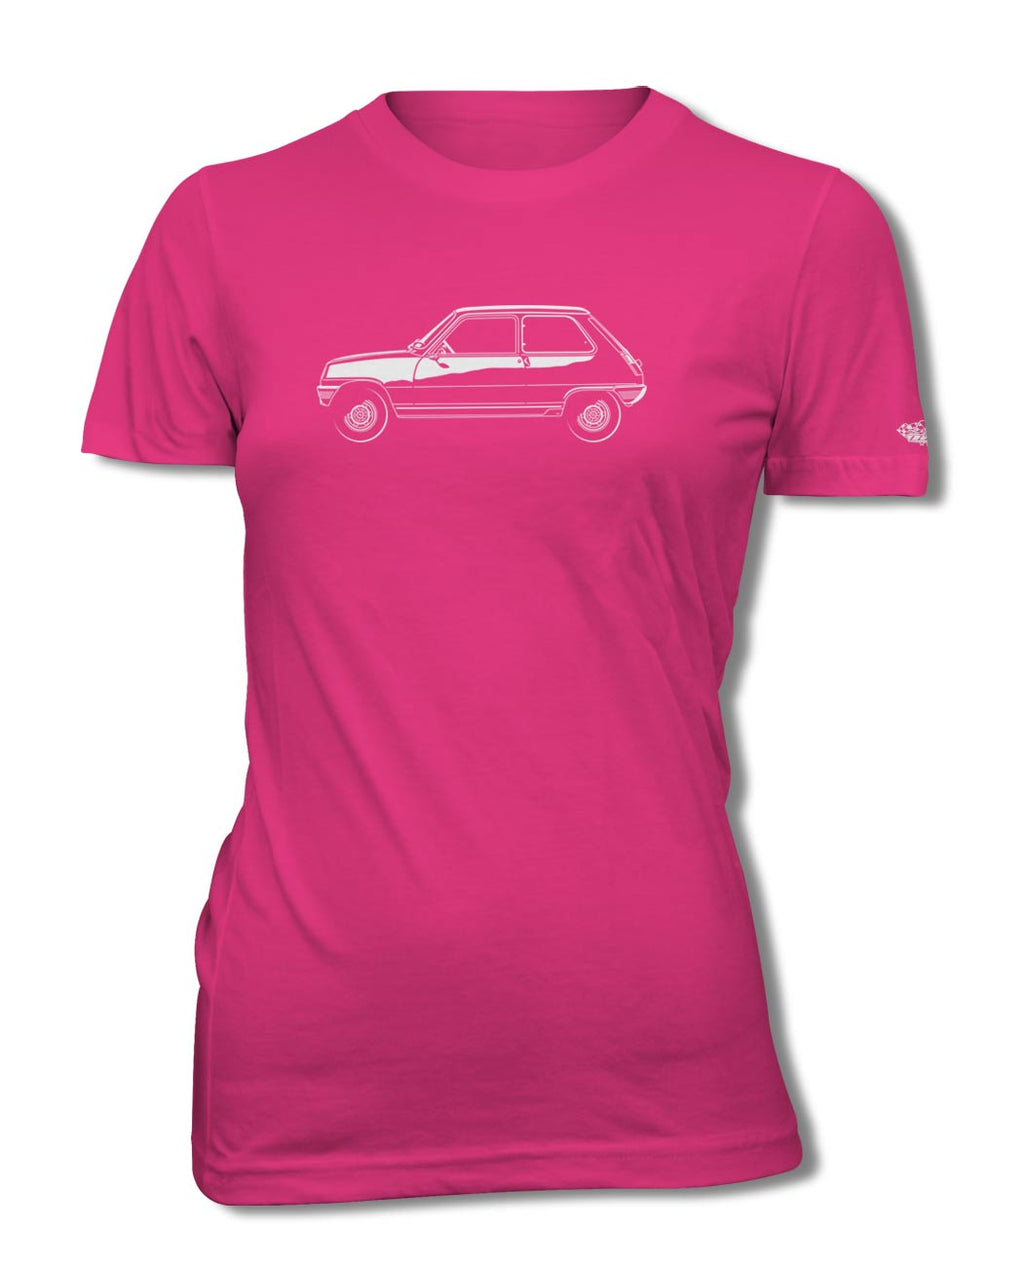 Renault 5 R5 1972 - 1985 T-Shirt - Women - Side View